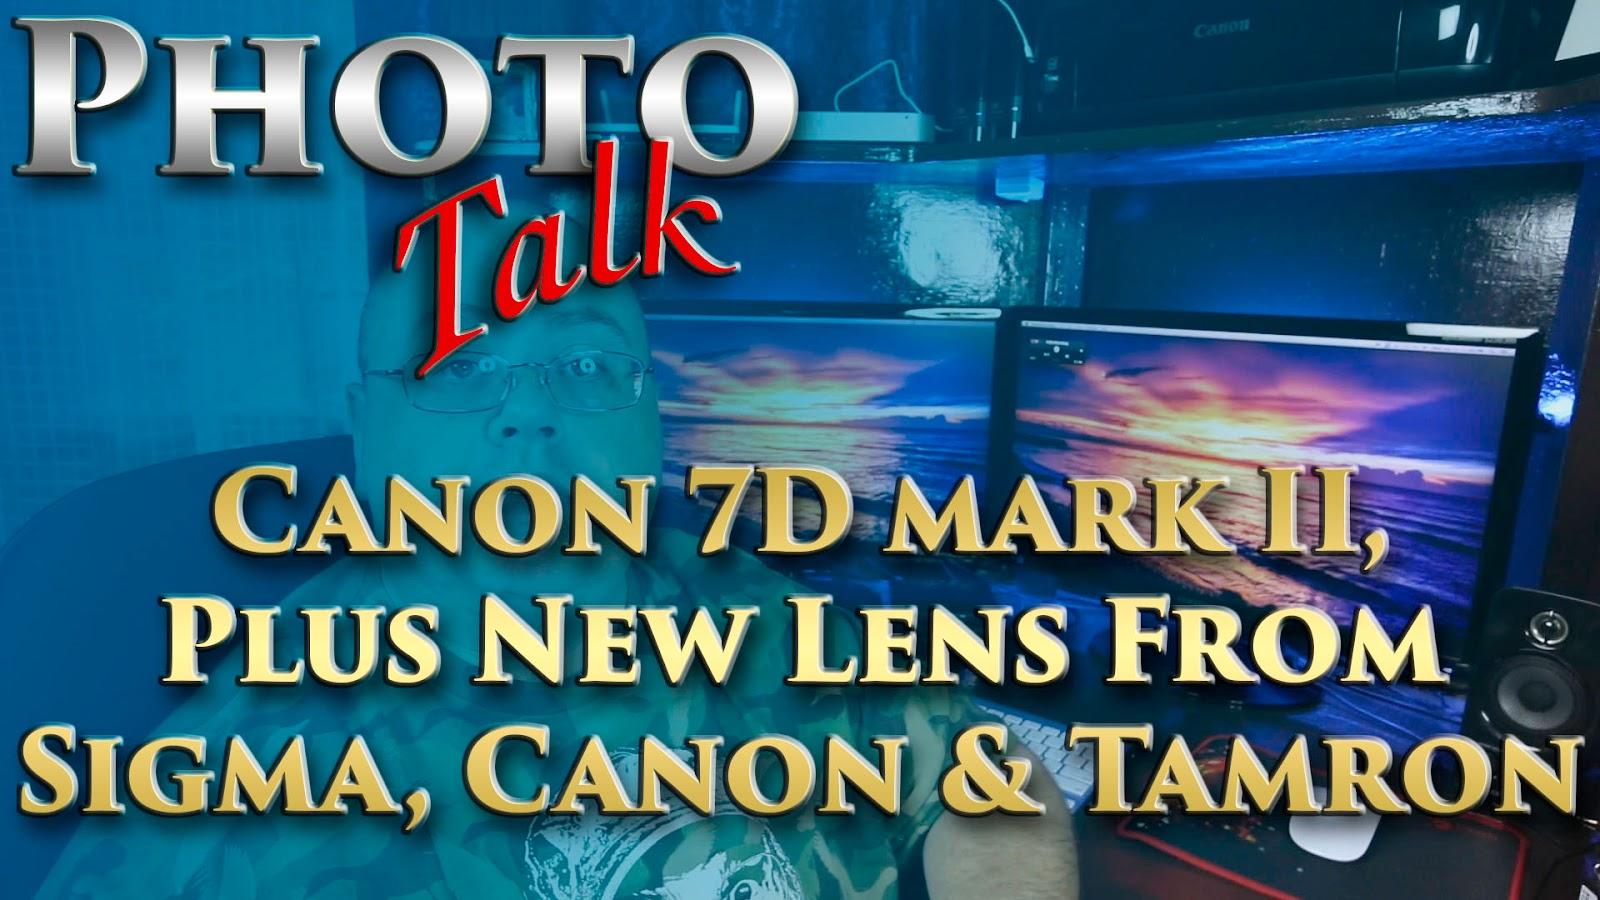 Canon 7D mark II, Plus New Lens From Sigma, Canon & Tamron